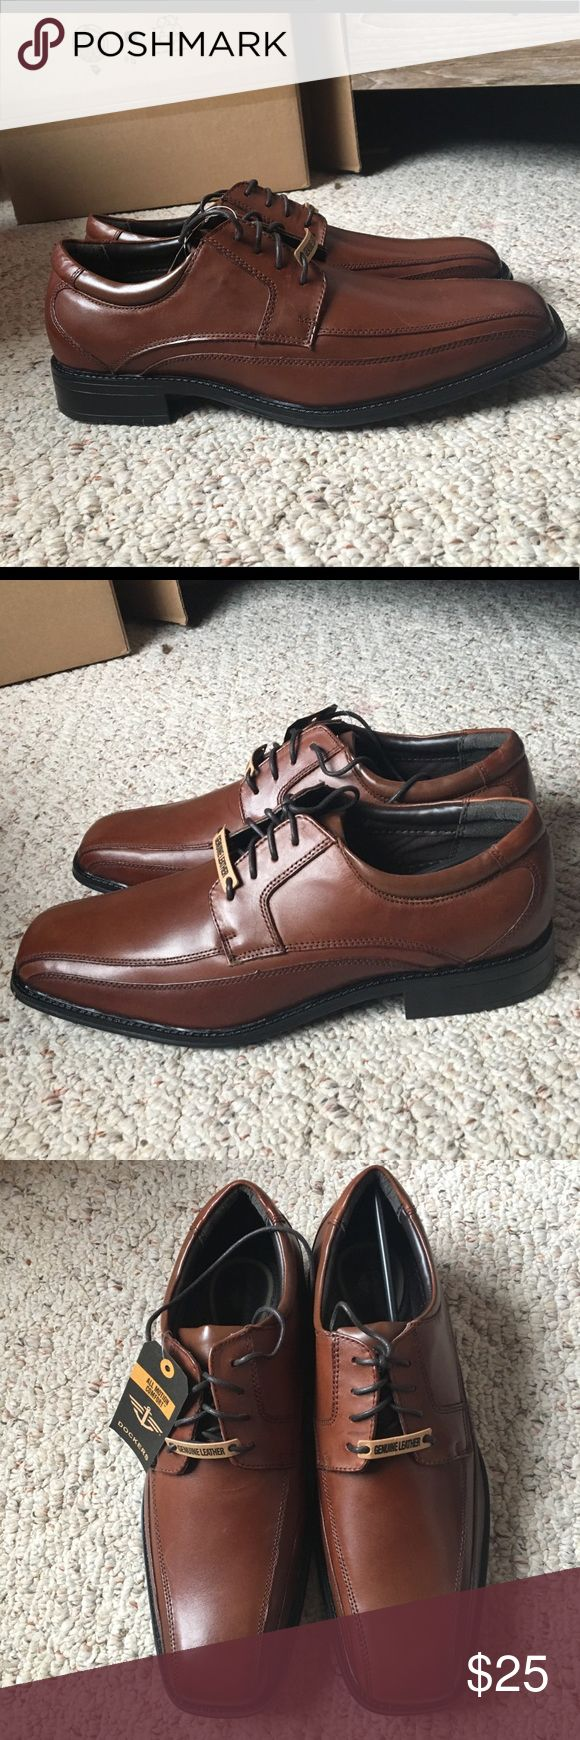 NWT Men's Leather Brown Dockers Dress Shoe Brand new with